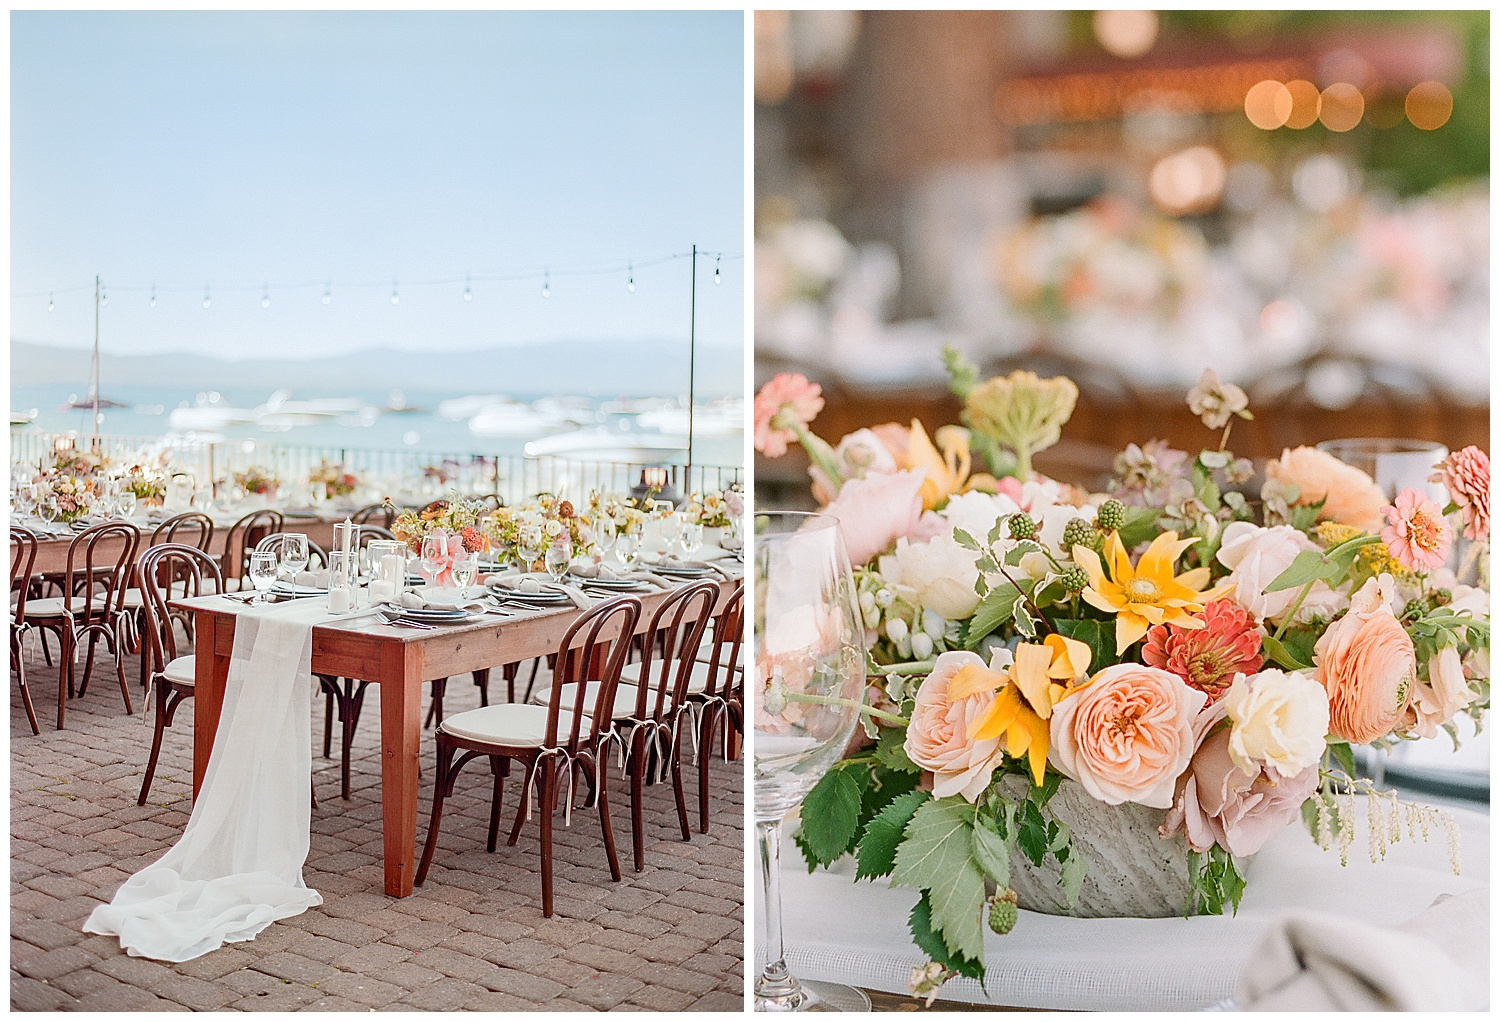 Janine_Licare_Photography_San_Francisco_Wedding_Photographer_Lake_Tahoe_West_Shore_Cafe_Colorful_Summer_0036.jpg